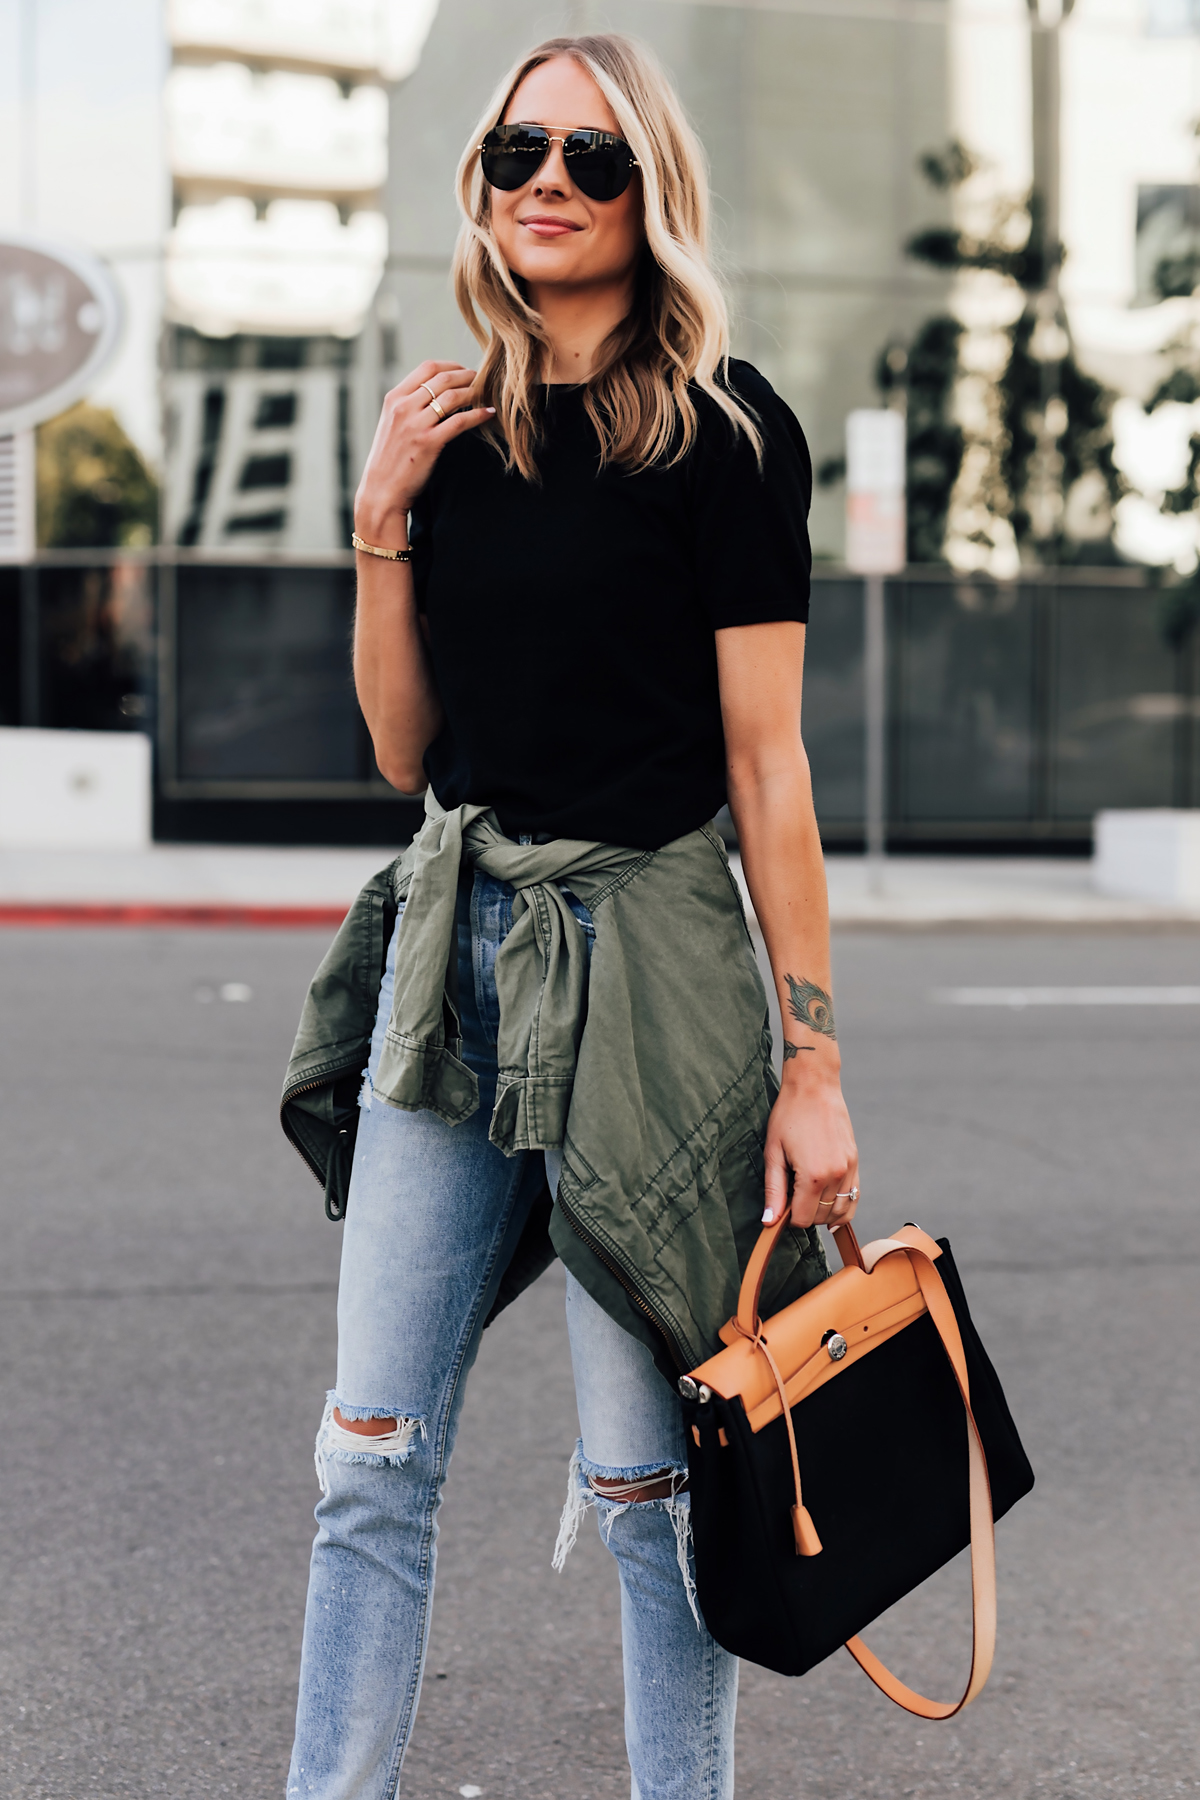 Blonde Woman Wearing Short Sleeve Black Top Denim Ripped Skinny Jeans Green Utility Jacket Vintage Hermes Herbag Black Fashion Jackson San Diego Fashion Blogger Street Style